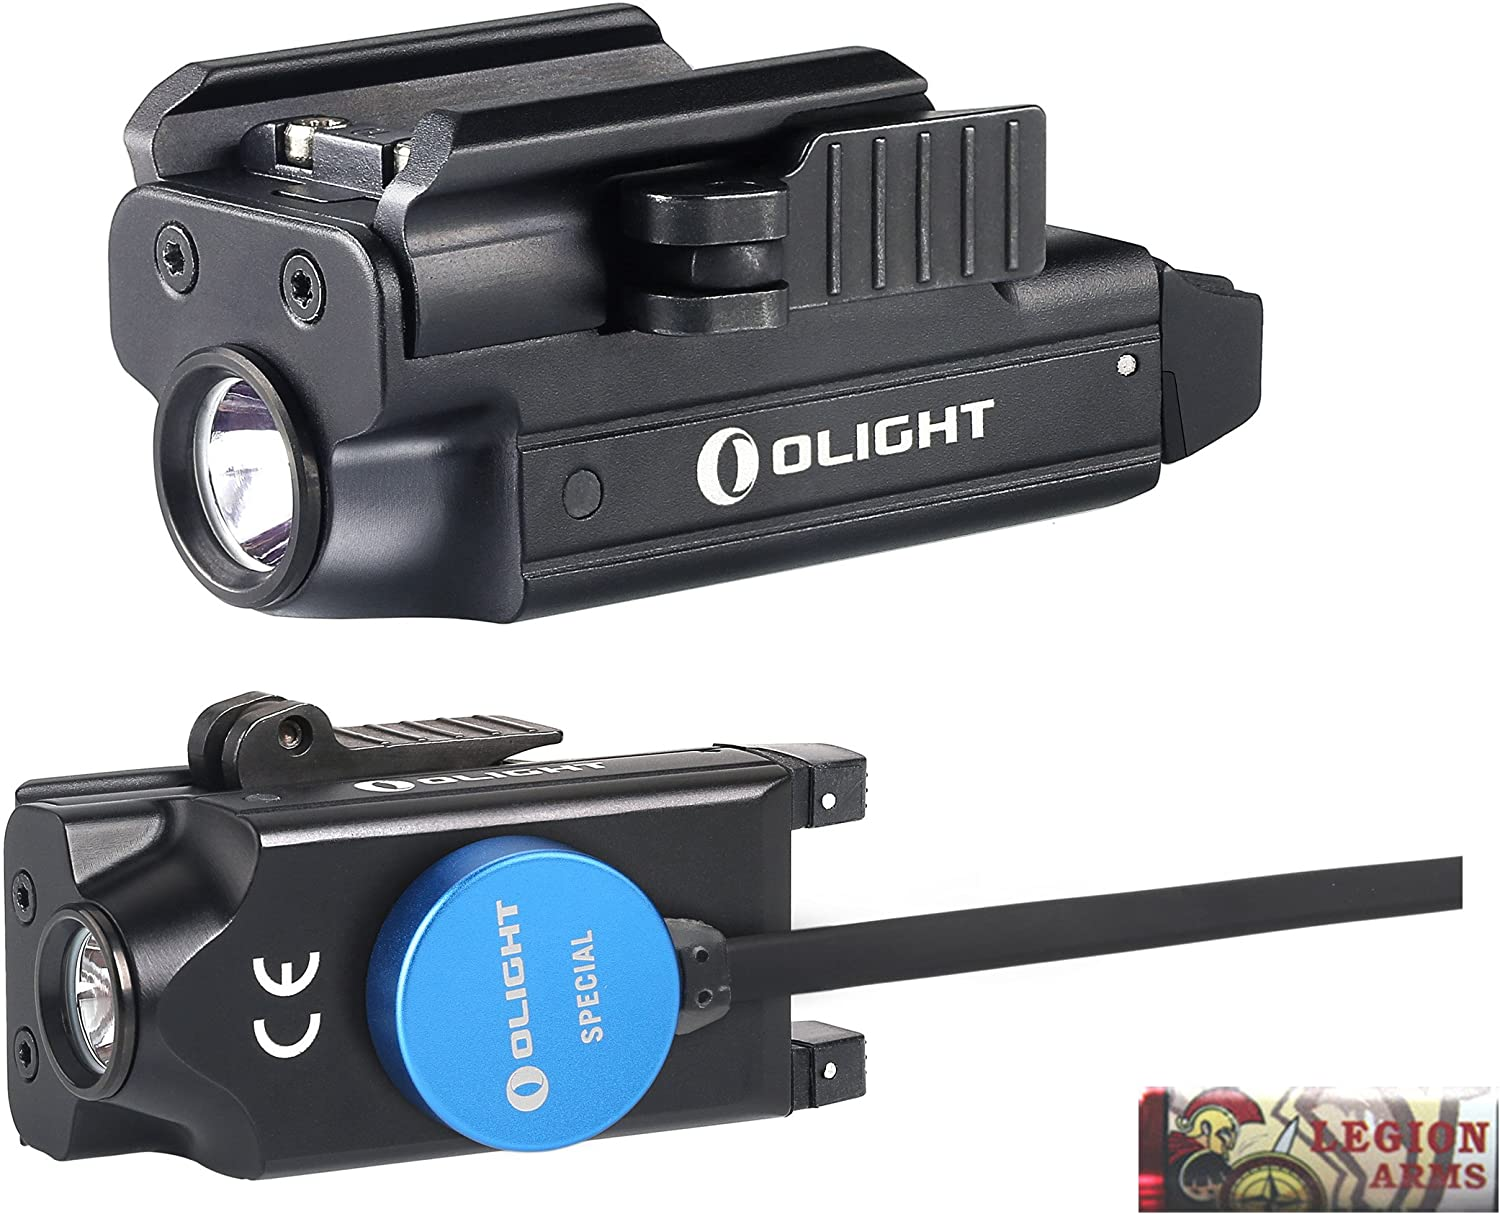 OLIGHT PL-Mini Valkyrie 400 Lumen LED Rechargeable Compact Pistol Light, Build-in Lithium Battery, Charging Cable, Quick Release Mount for GL, s&w, Springfield, sig sauer, etc w/LegionArms Sticker